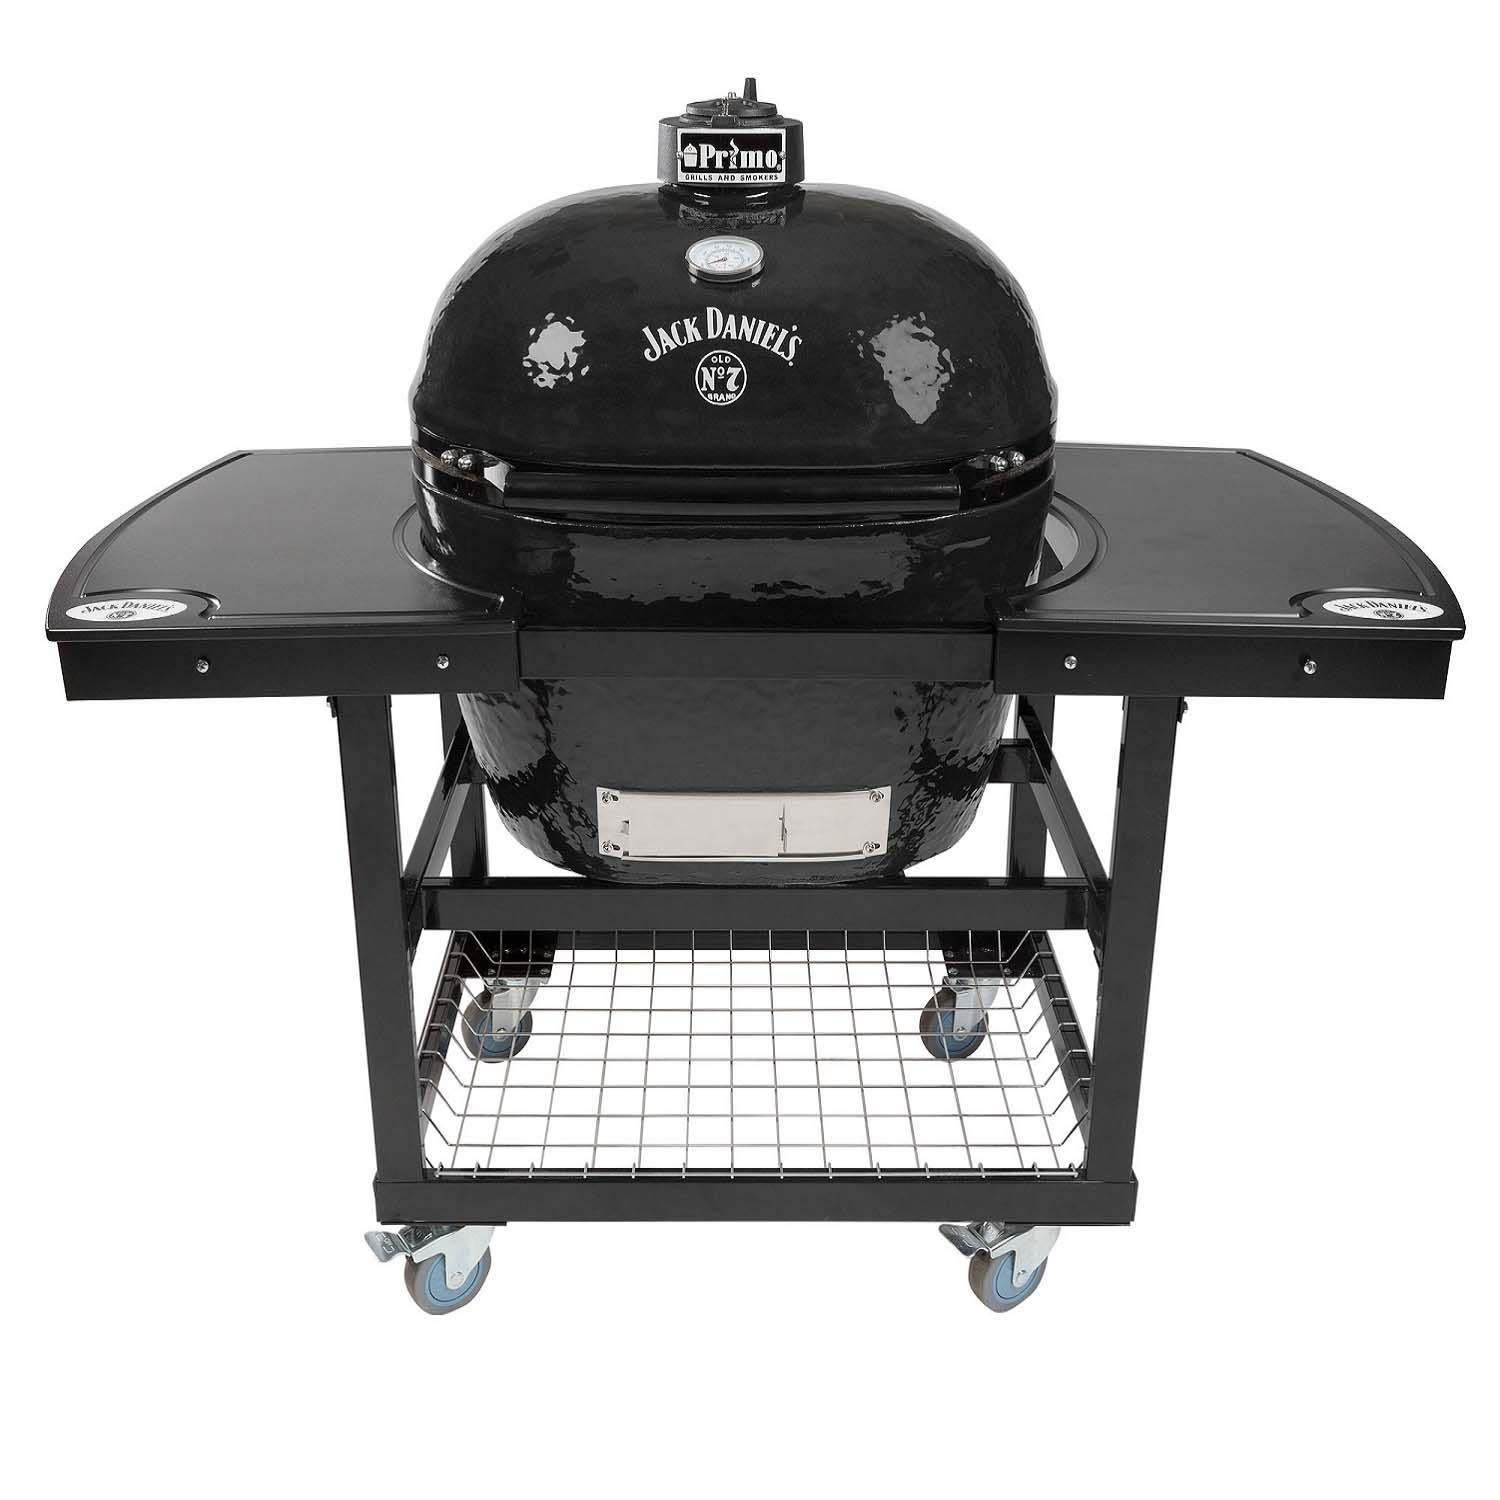 Primo Oval XL 400 Ceramic Smoker Grill Jack Daniel's Edition On Cart with 1-Piece Jack Daniel's Island Top by